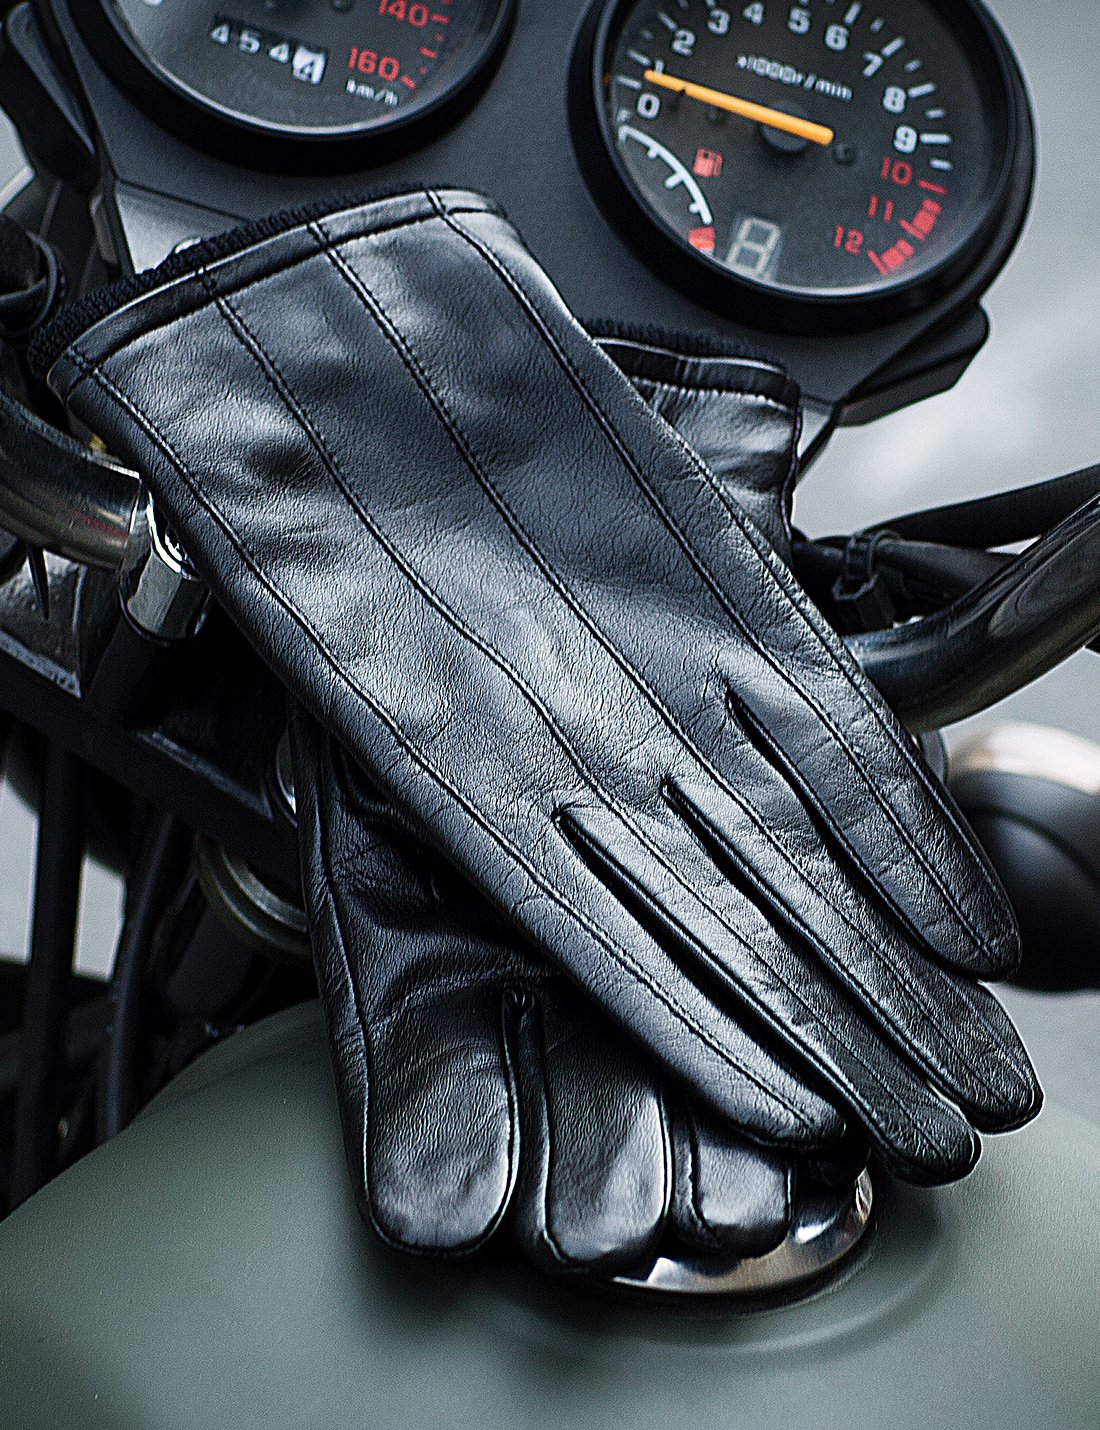 YISEVEN Men's Genuine Nappa Leather Lined Winter Gloves -Black/Touchscreen,Black,11'' by YISEVEN (Image #4)